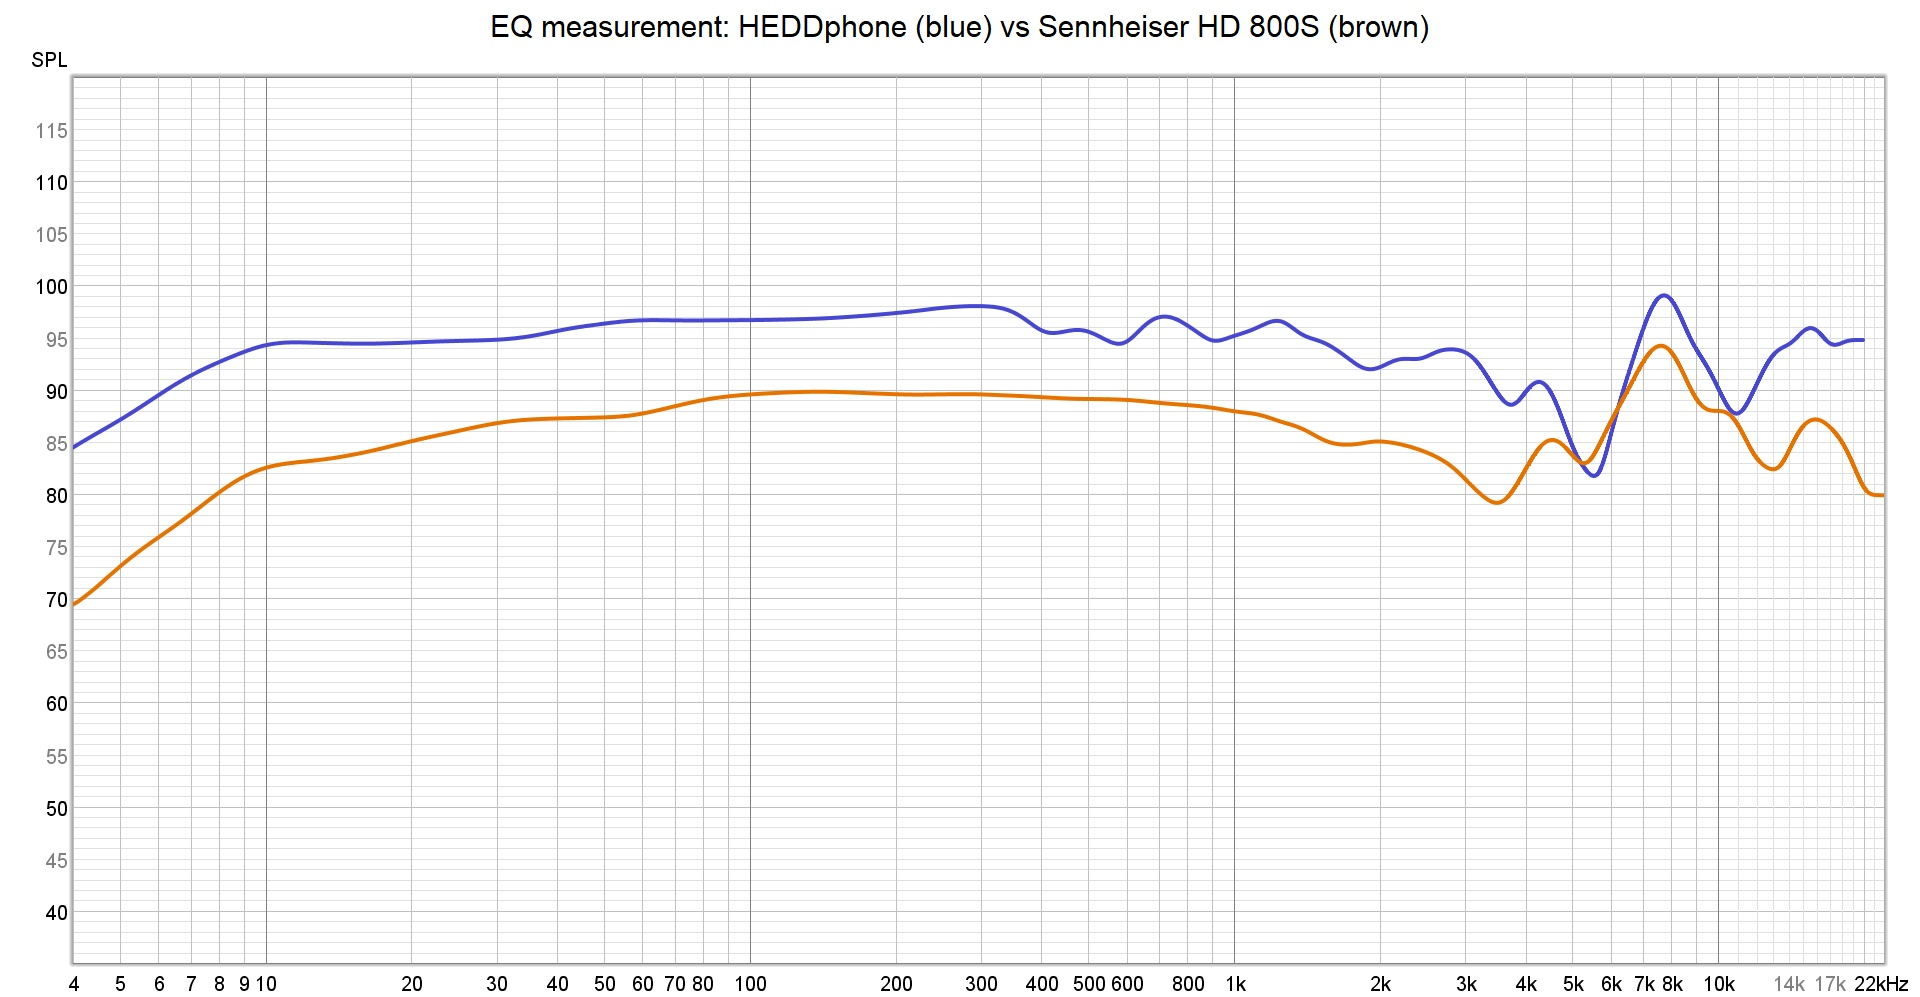 HEDDphone vs hd800s EQ